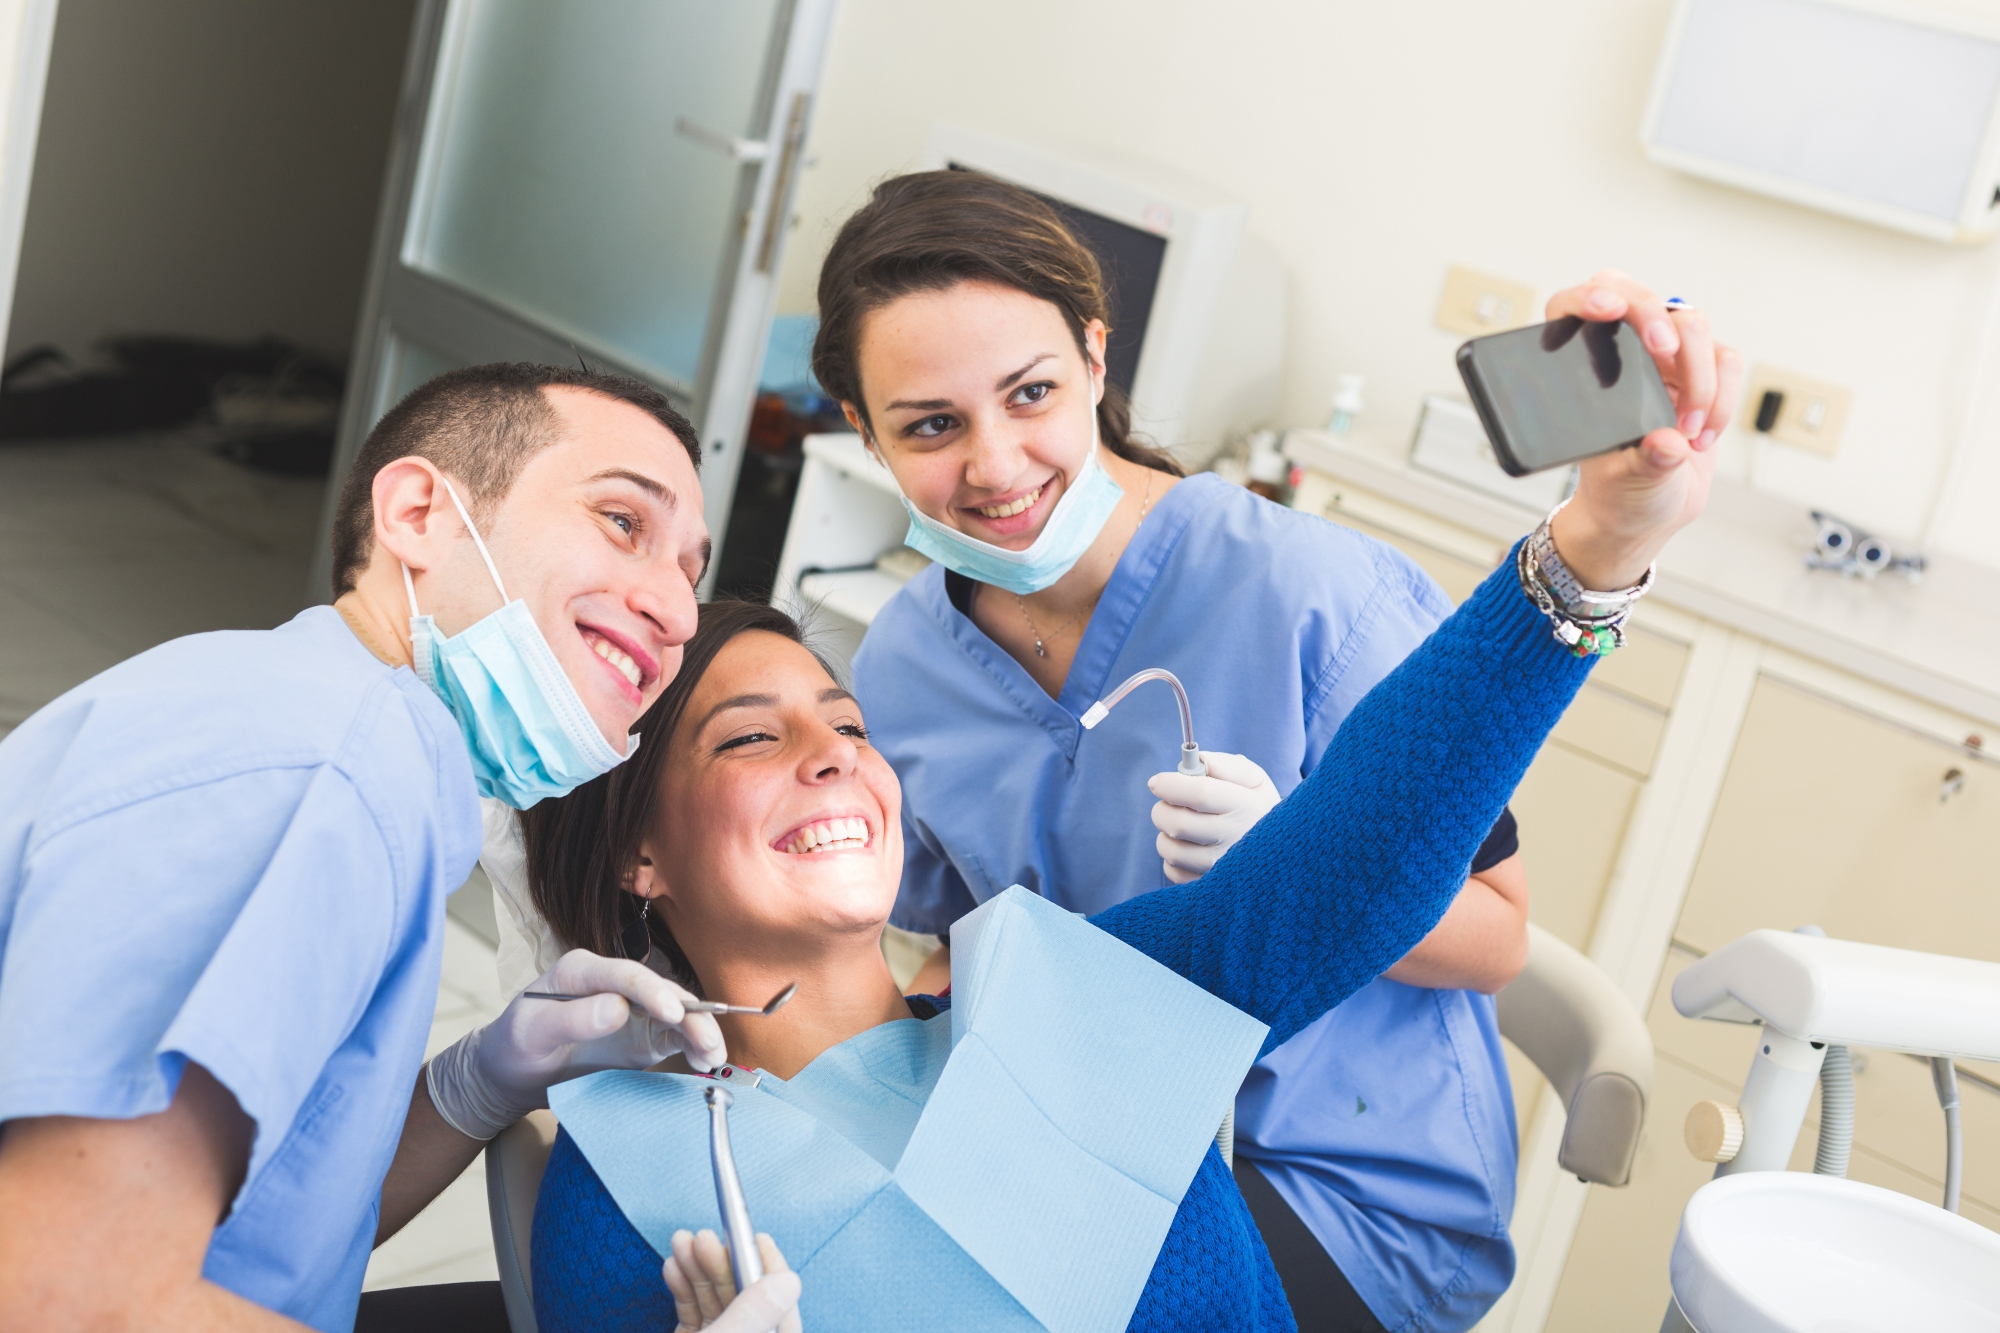 How user generated content can help grow dental practice